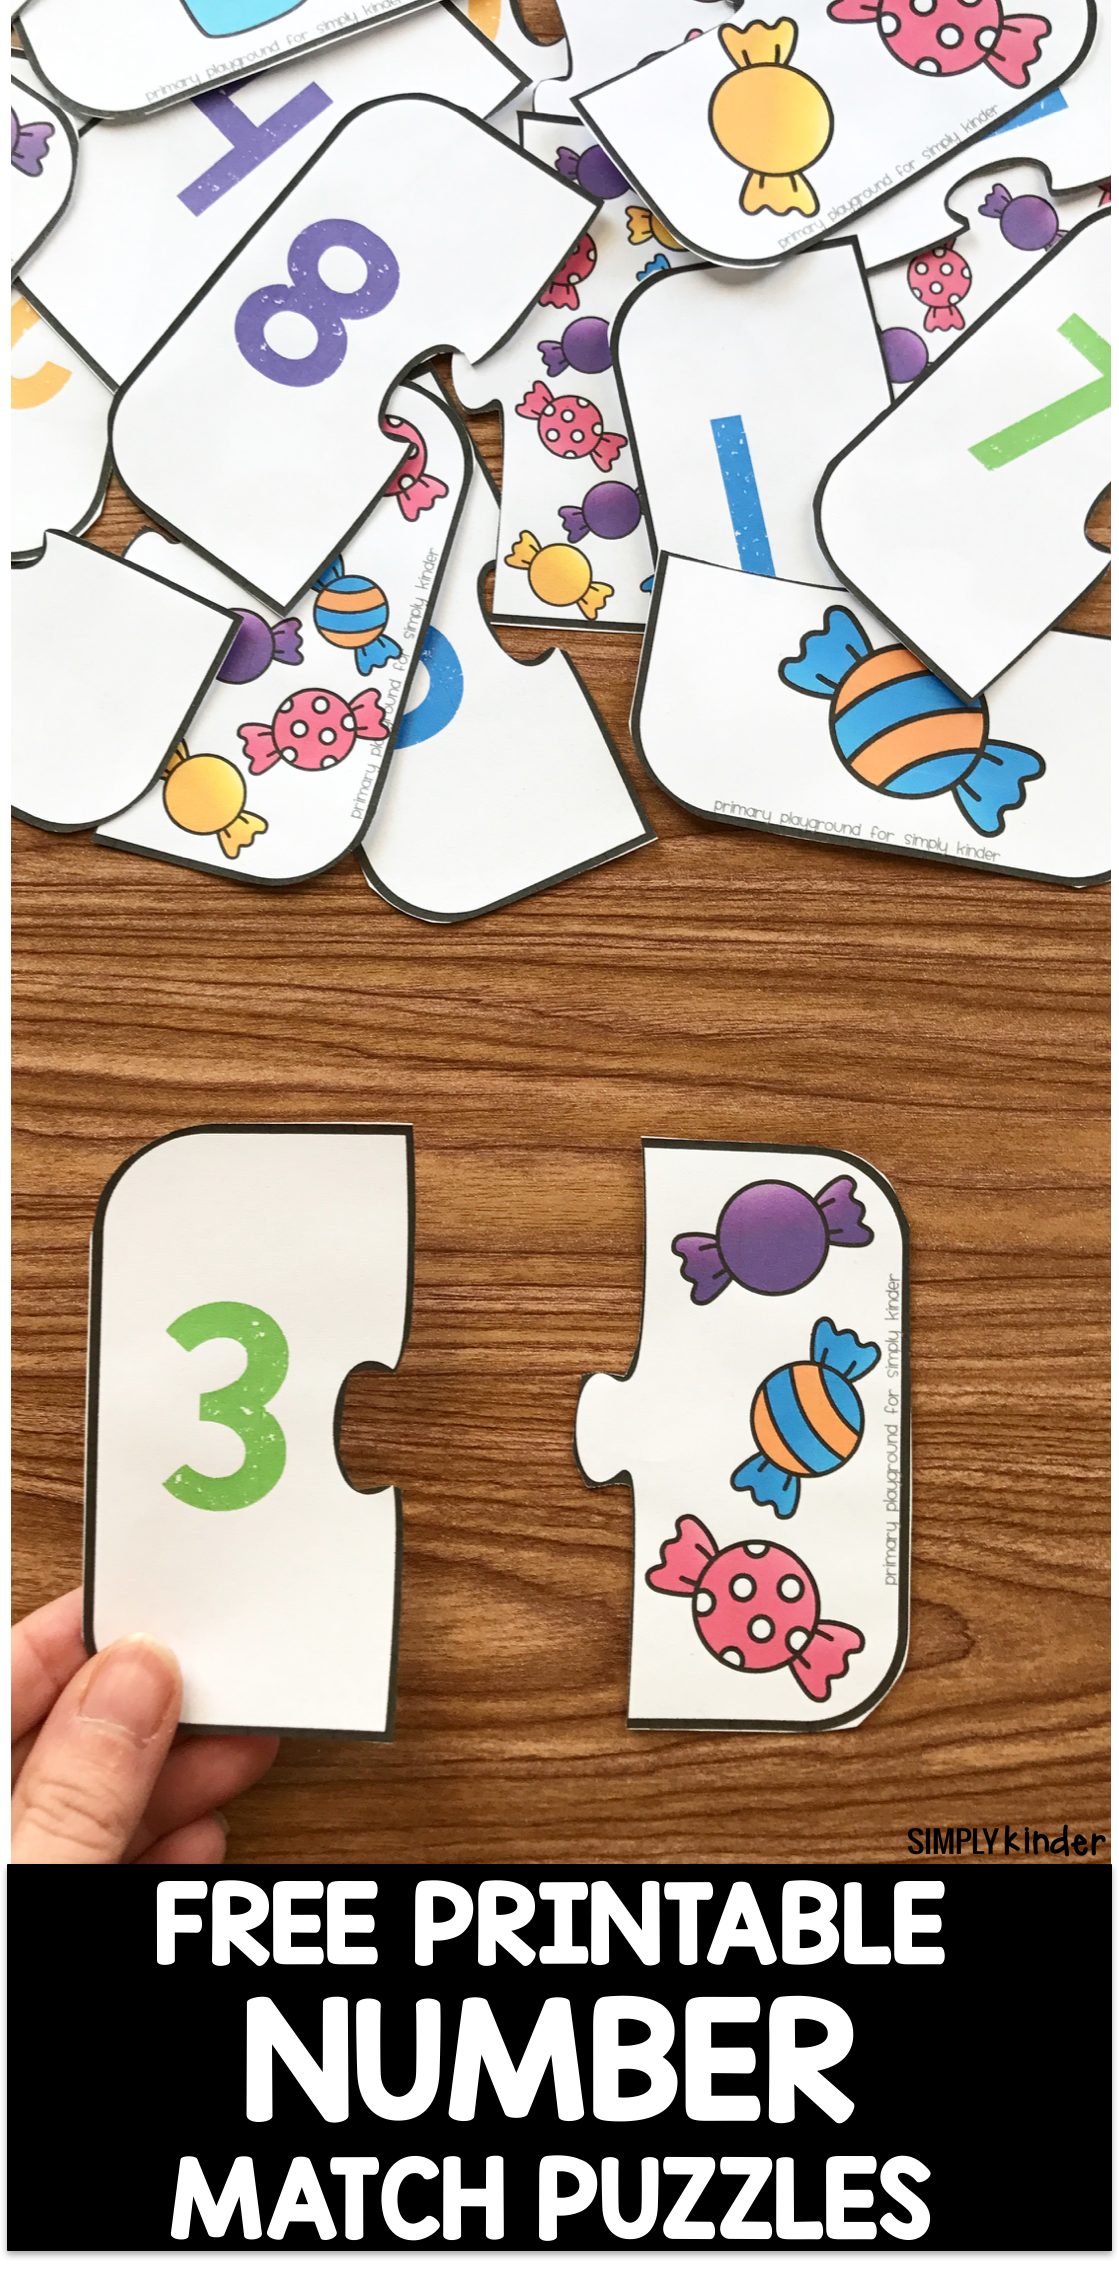 Free Printable Number Match Puzzles Simply Kinder